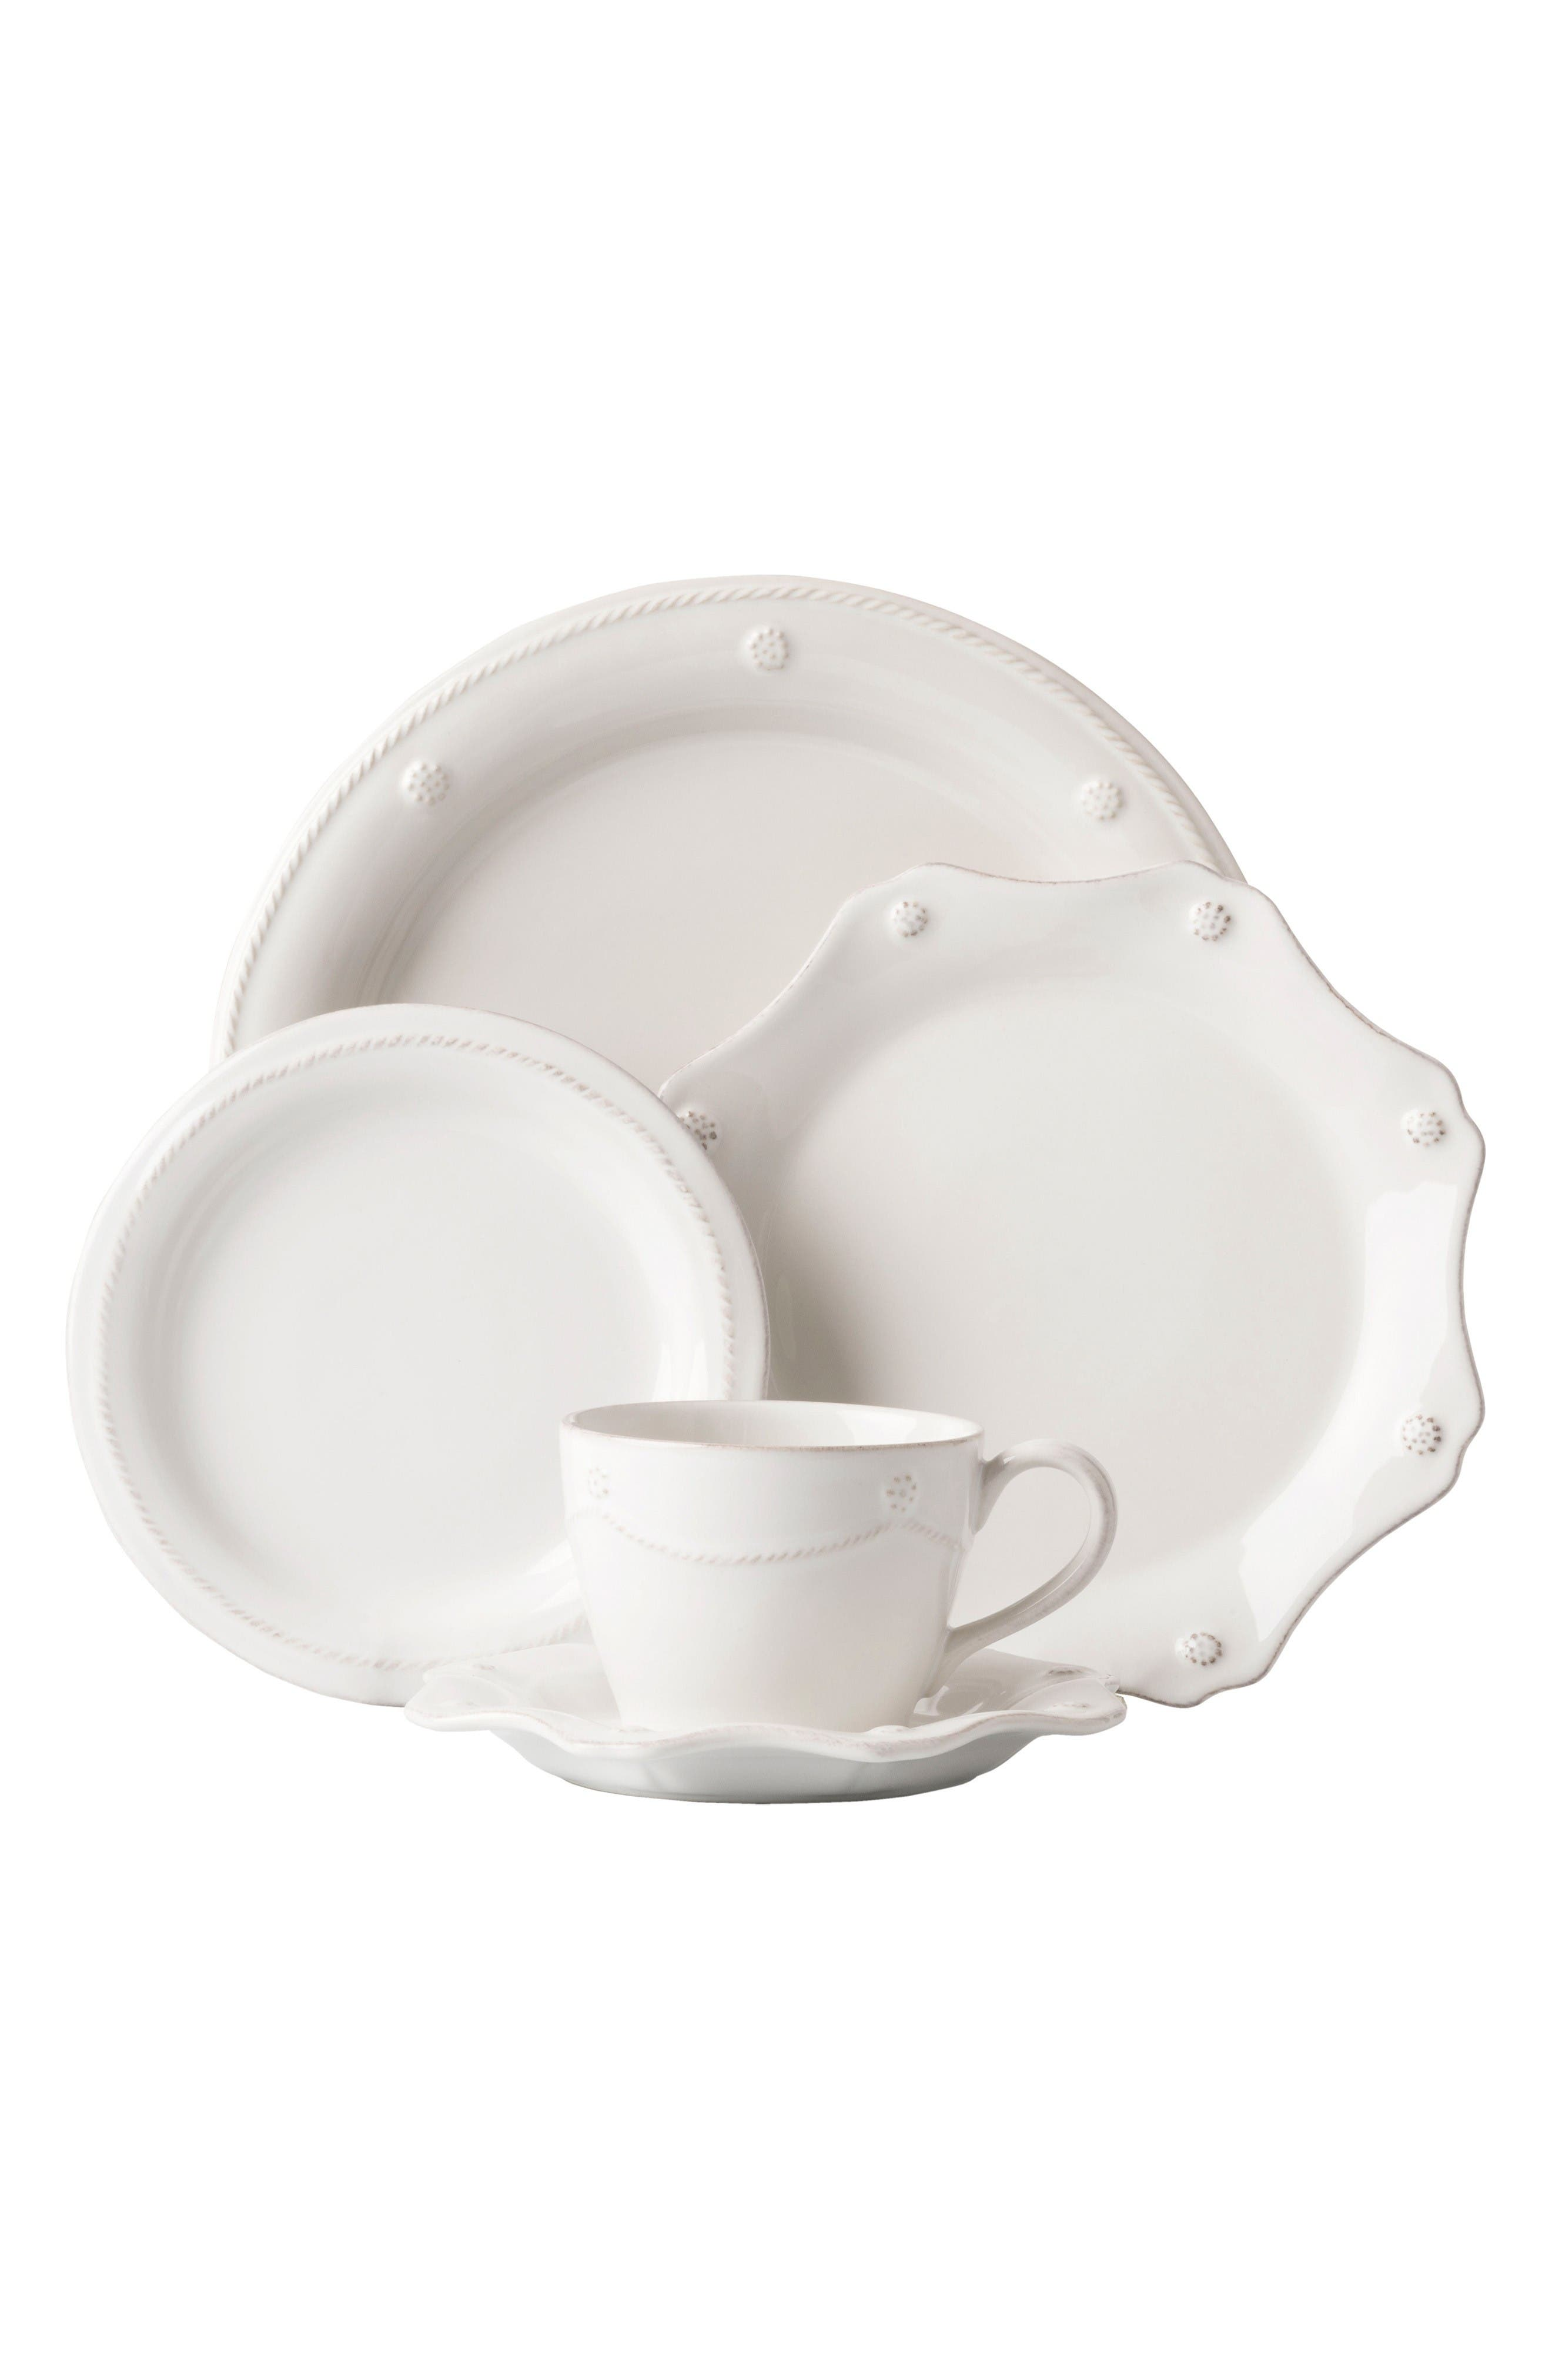 JULISKA 'Berry and Thread' 5-Piece Ceramic Place Setting